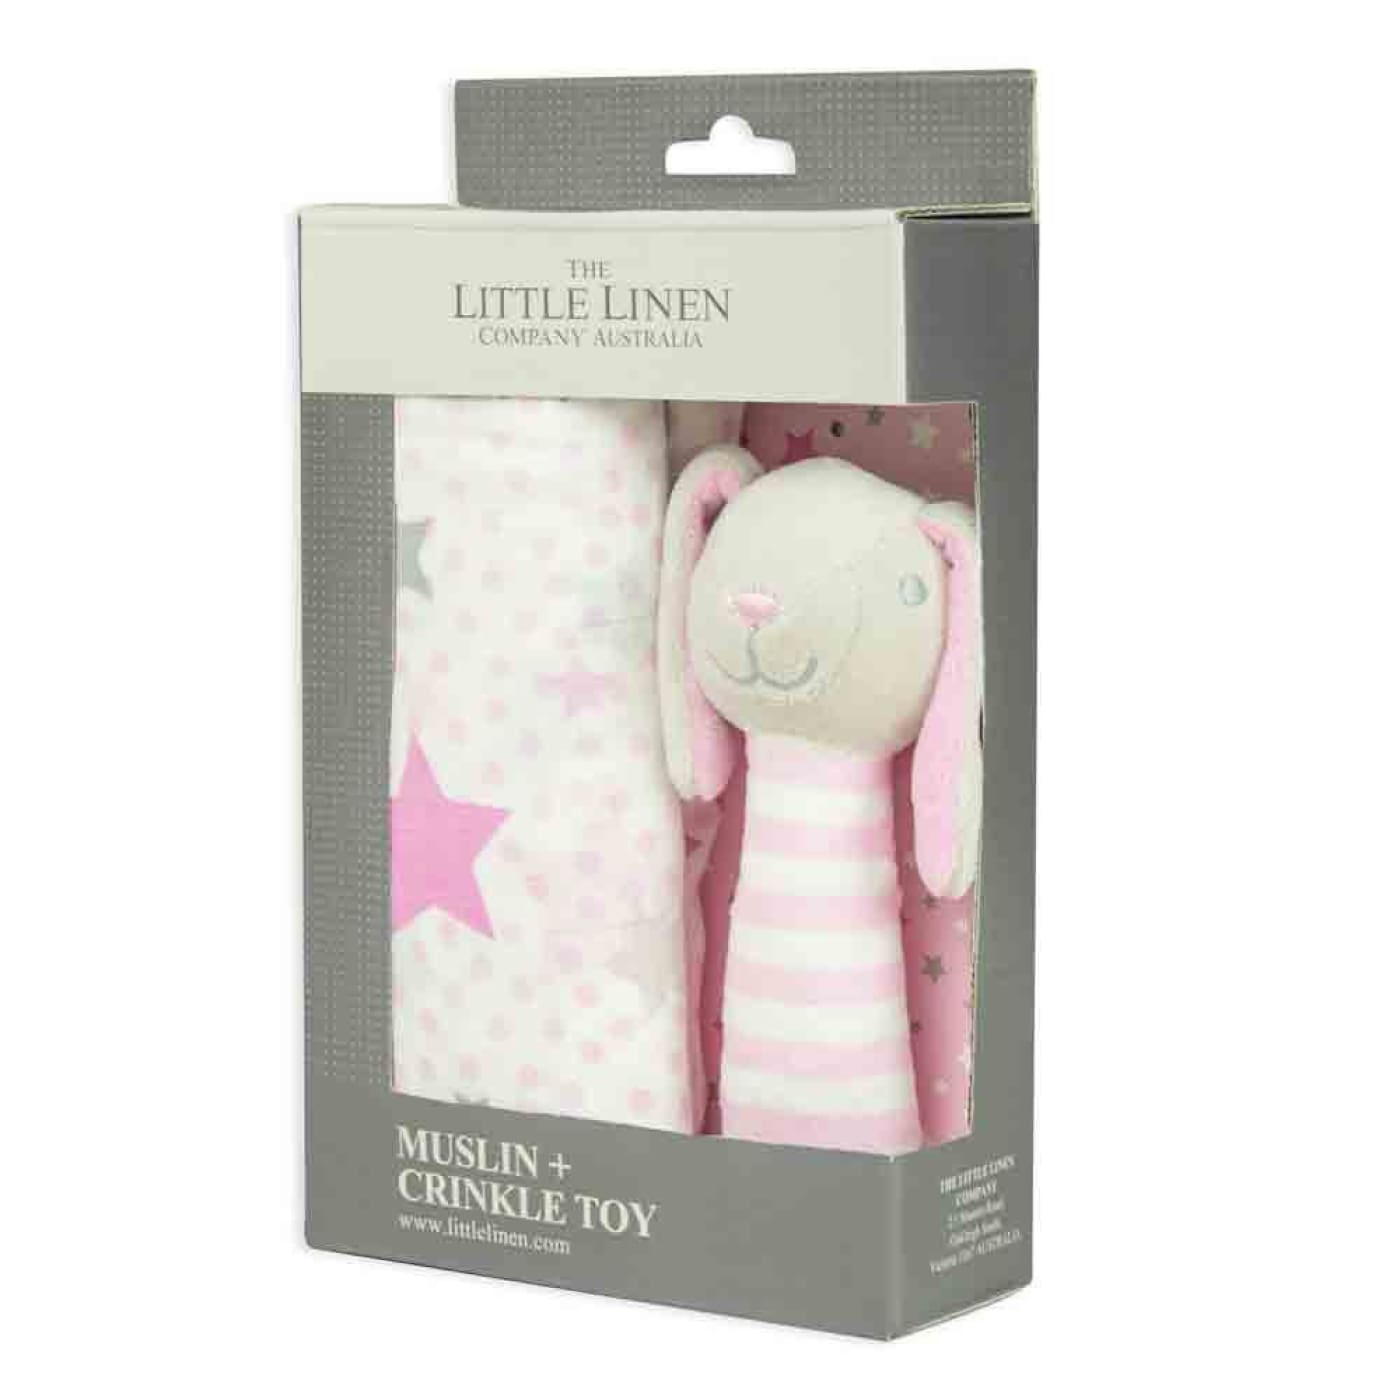 The Little Linen Company Muslin Wrap and Crinkle Toy - Pink Bunny - NURSERY & BEDTIME - SWADDLES/WRAPS